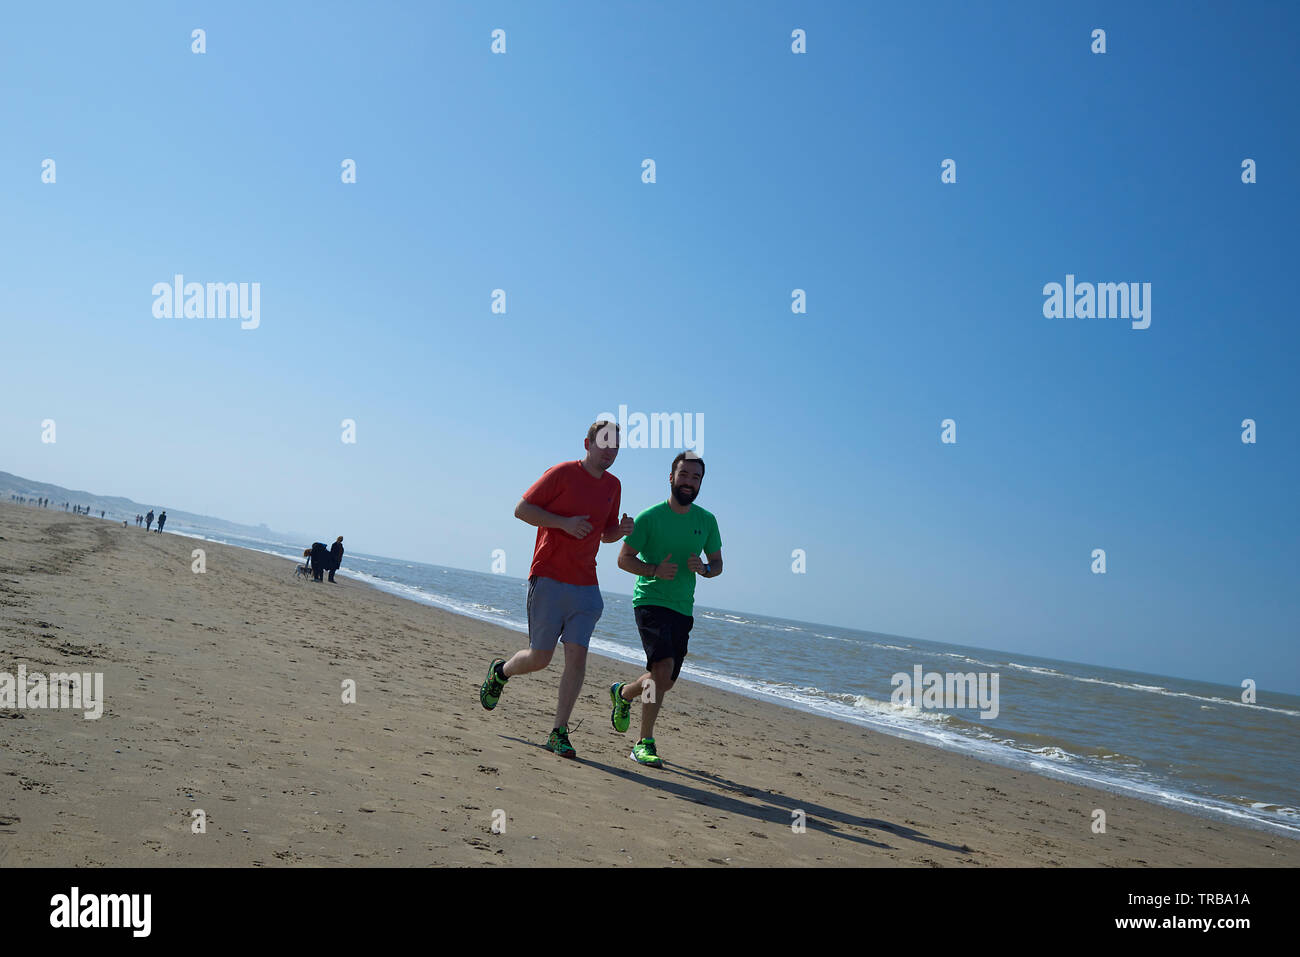 Two adult men running along the waterside at the beach in bright sunshine - Stock Image